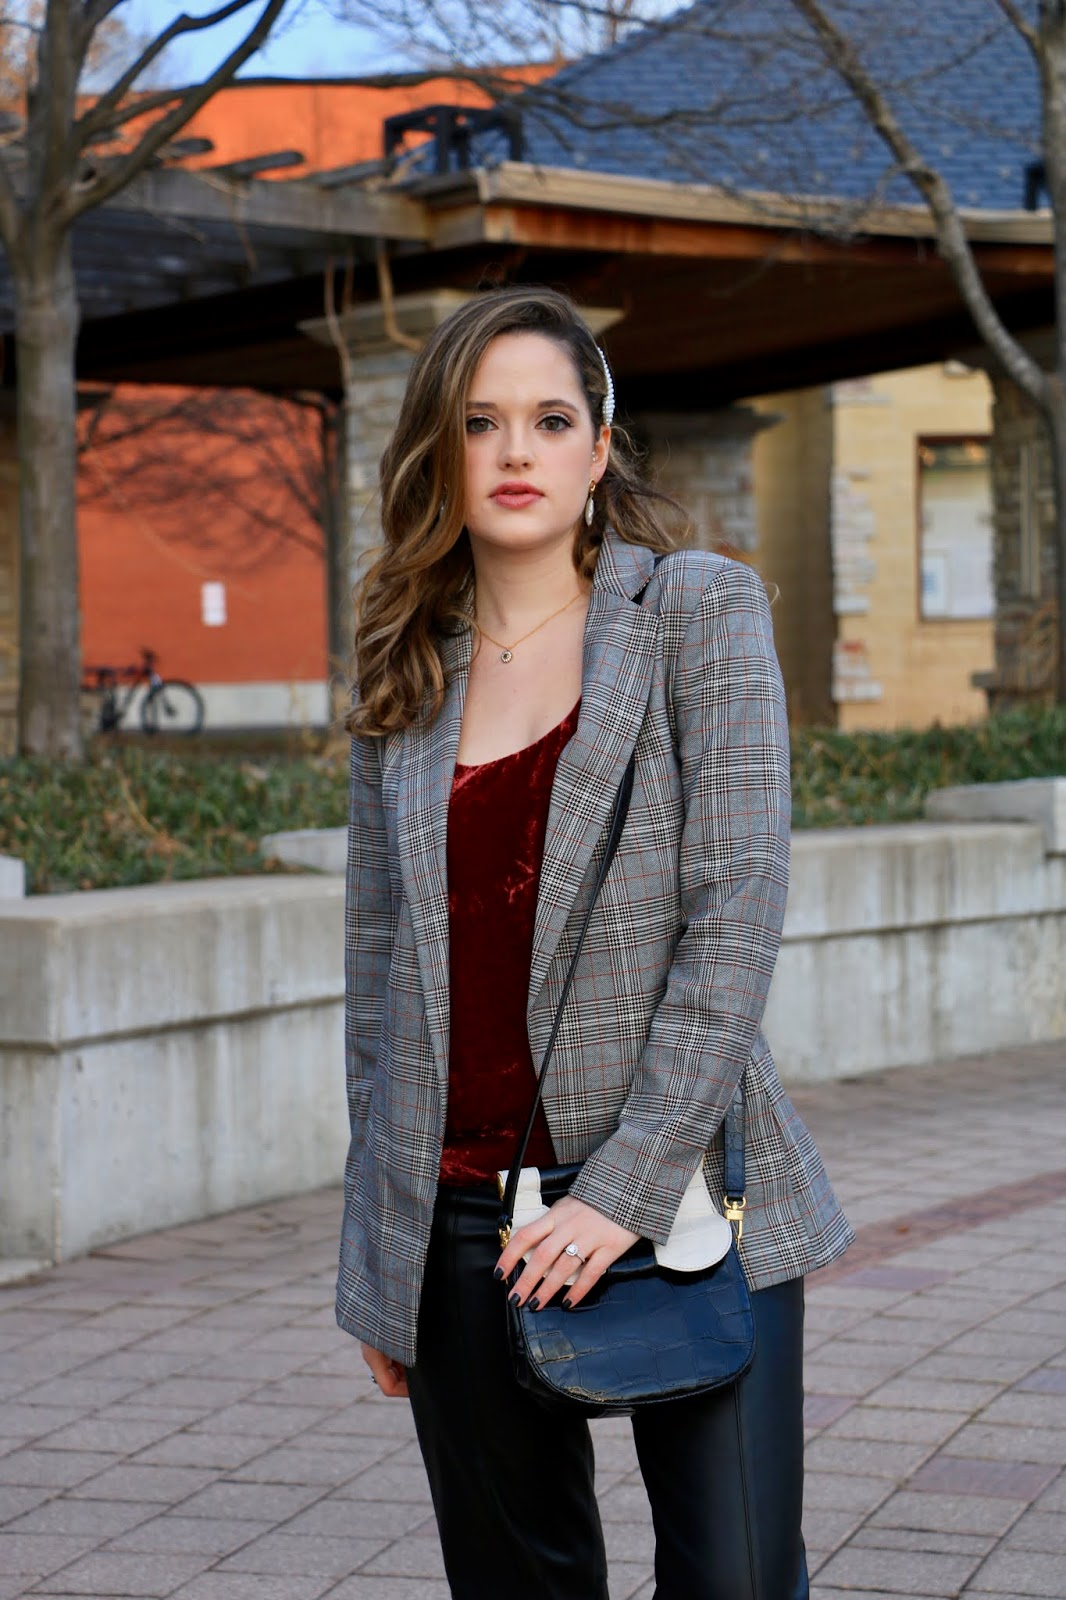 Nyc fashion blogger Kathleen Harper's winter outfit idea for date night.